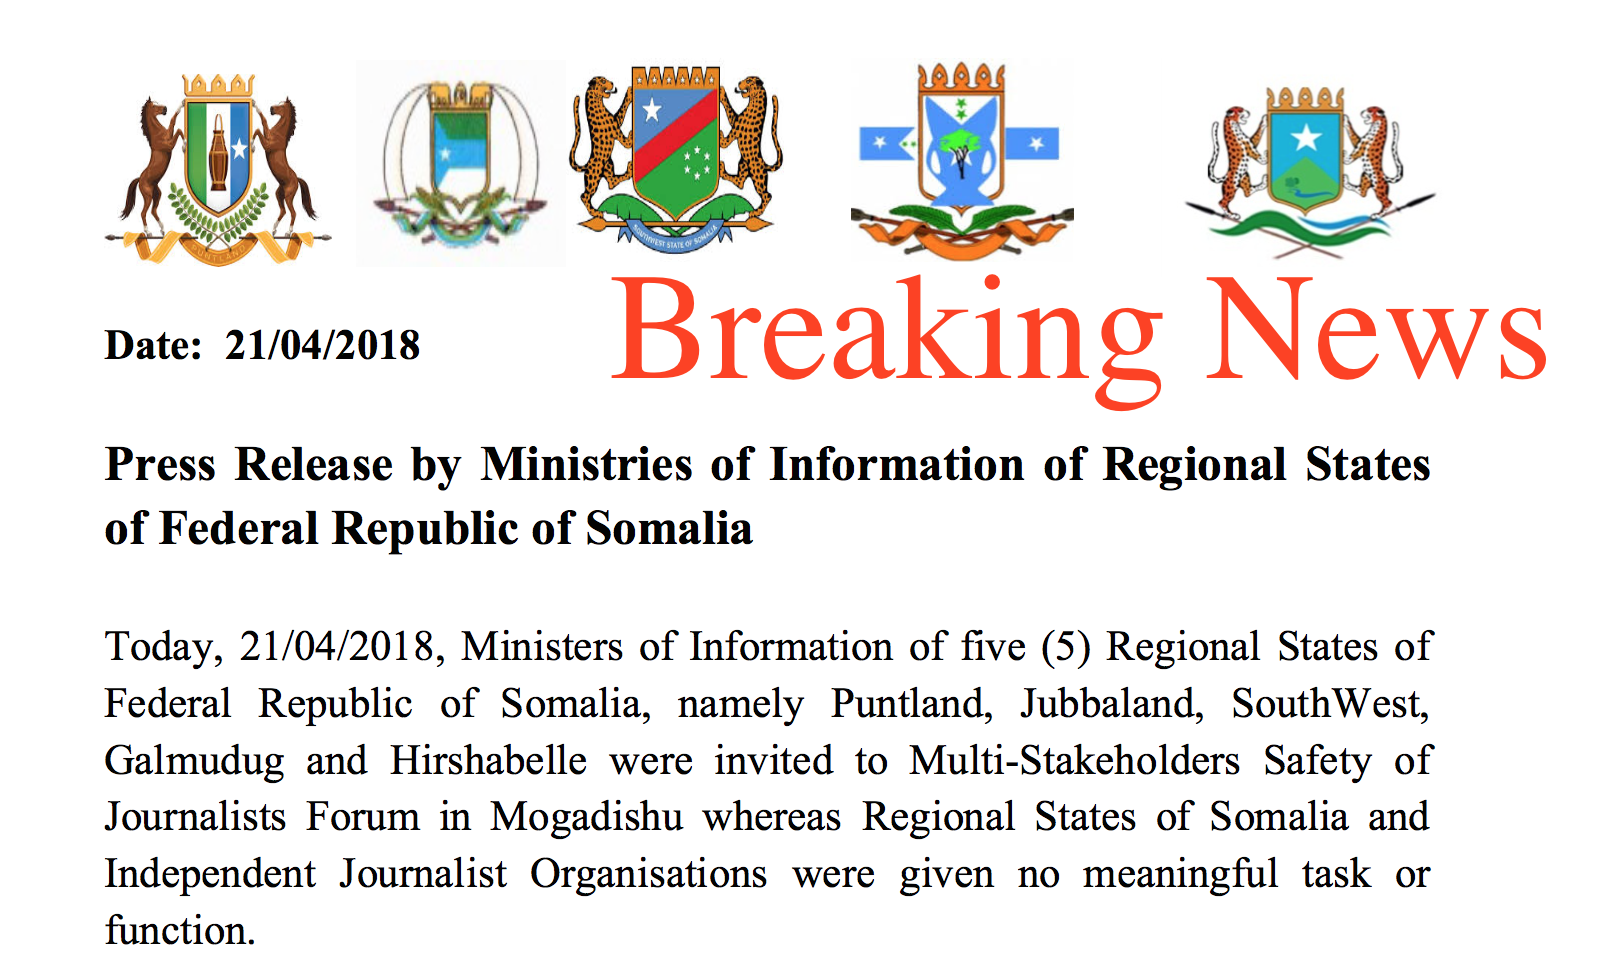 Press Release by Ministries of Information of Regional States of Federal Republic of Somalia